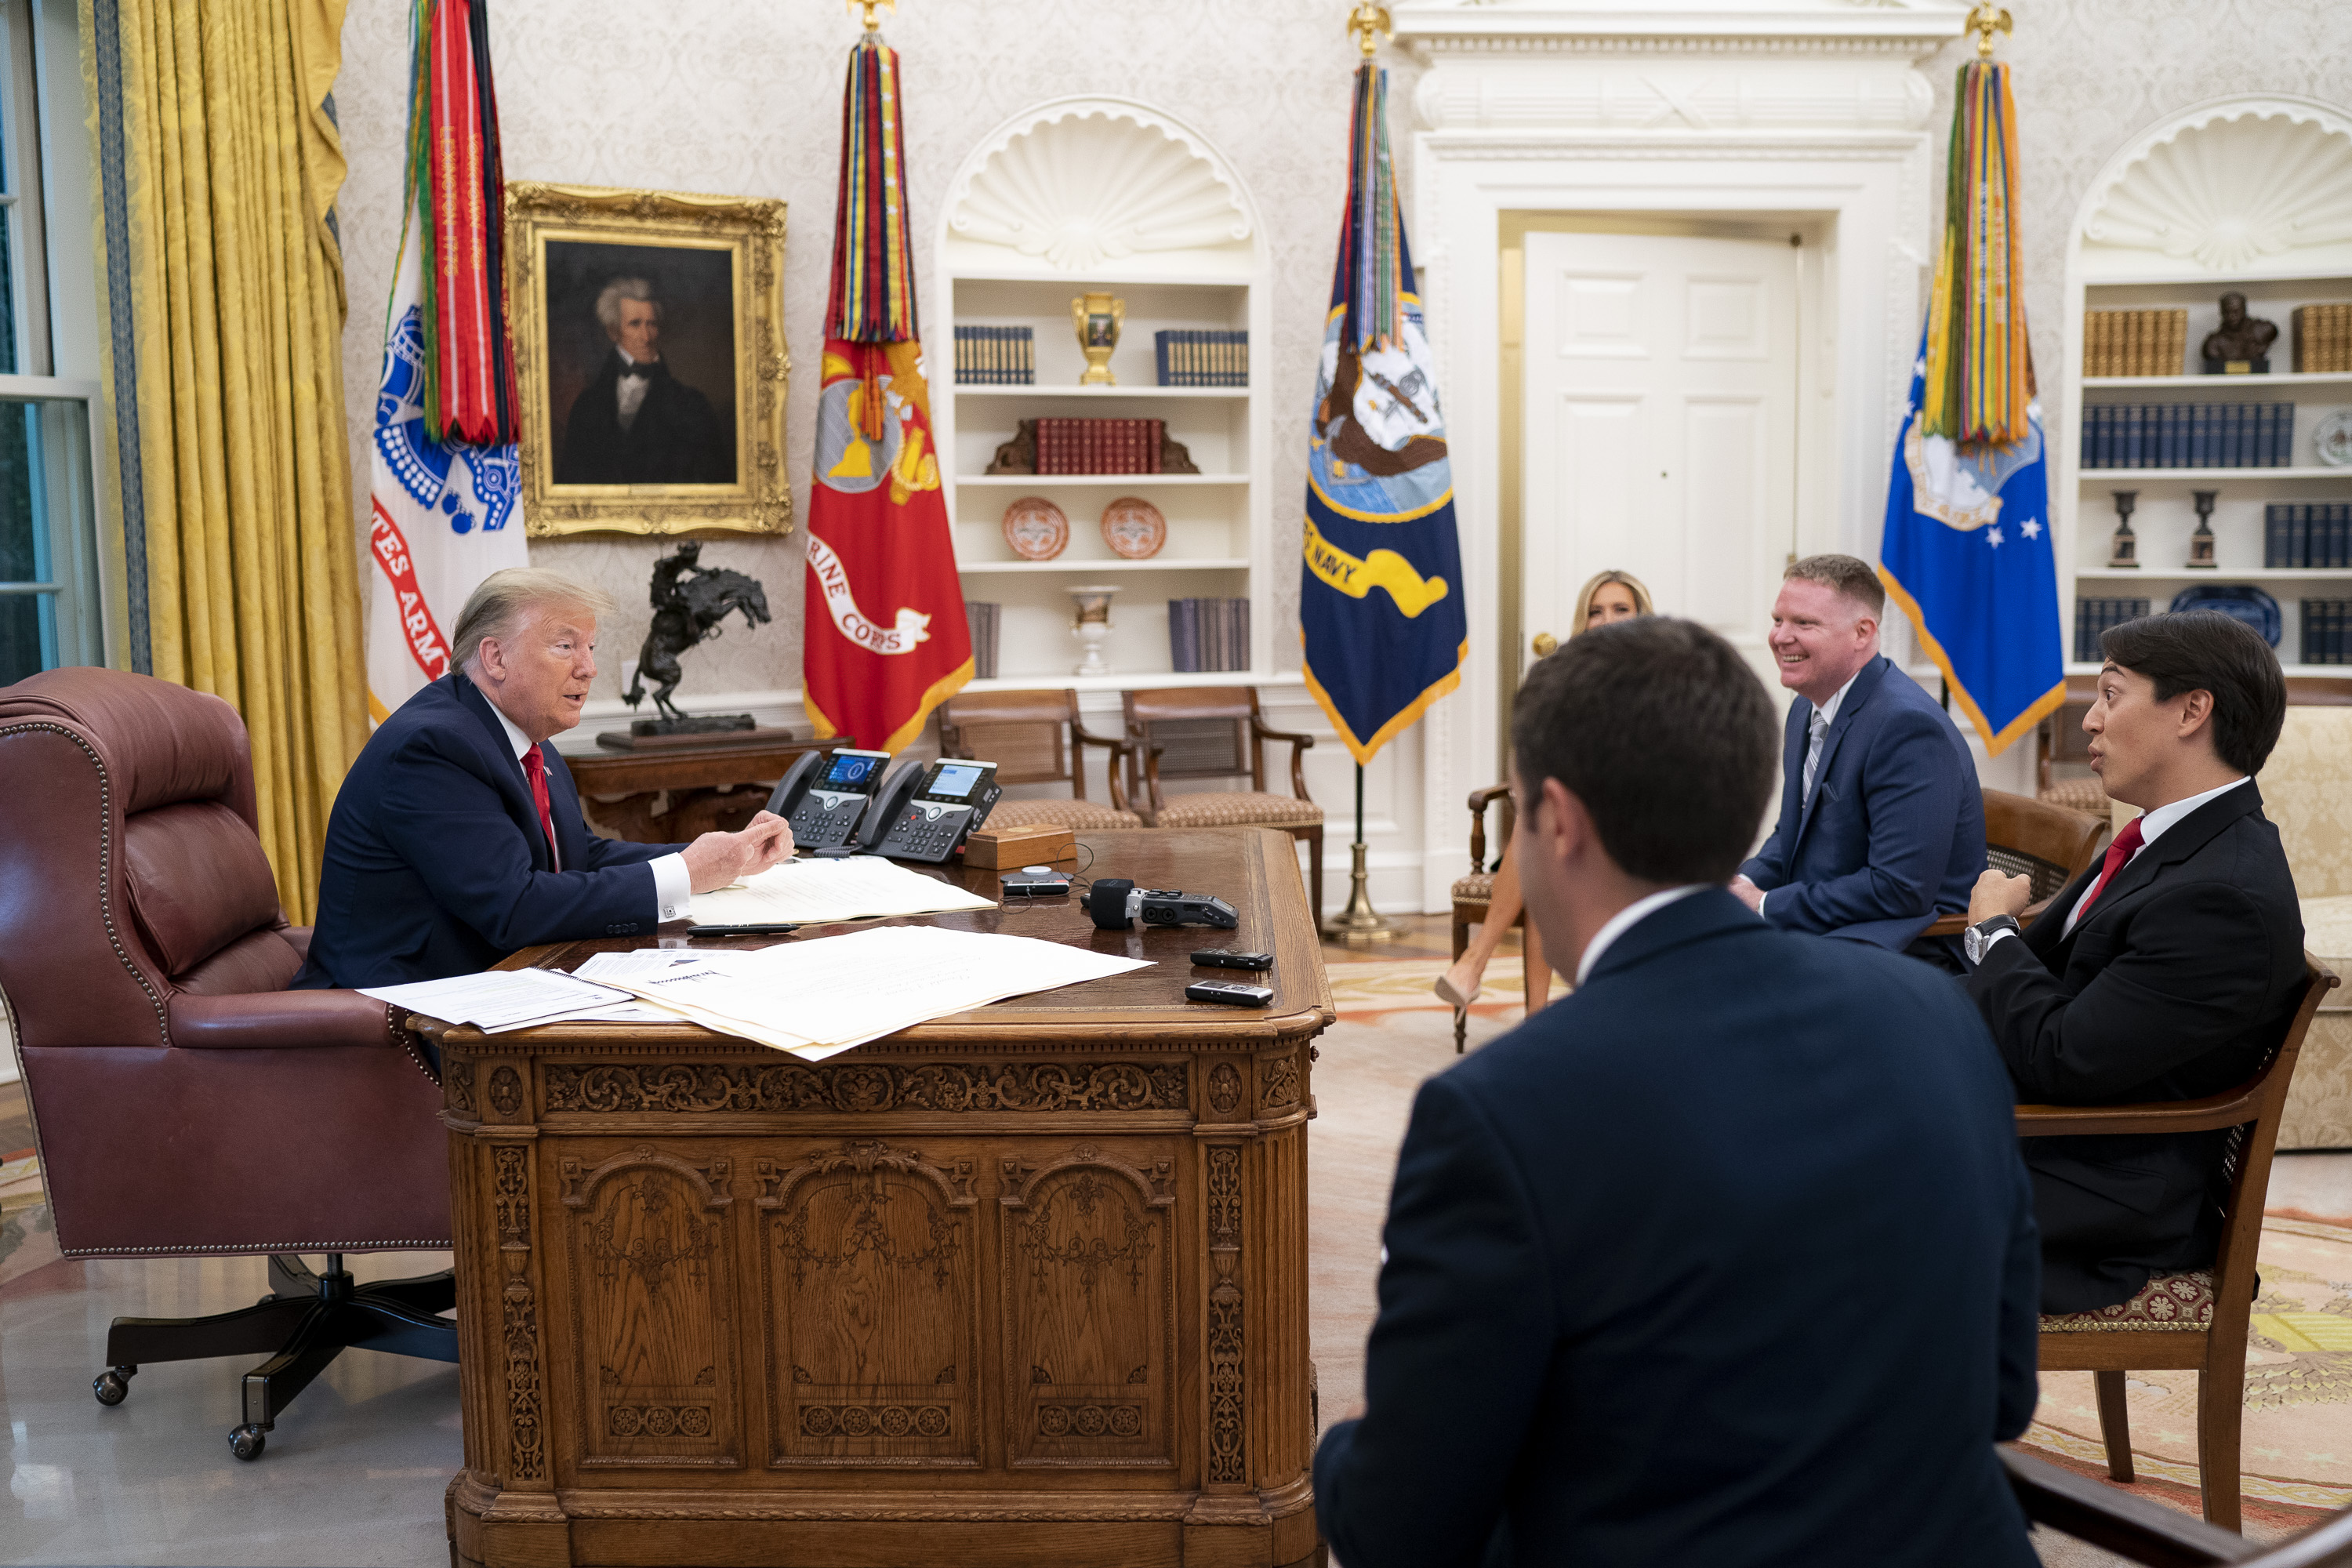 President Donald Trump, Vince Coglianese, Christian Datoc, Geoff Ingersoll, and Kayleigh McEnany sit down for an exclusive Oval Office interview (White House Photo by Tia Dufour)